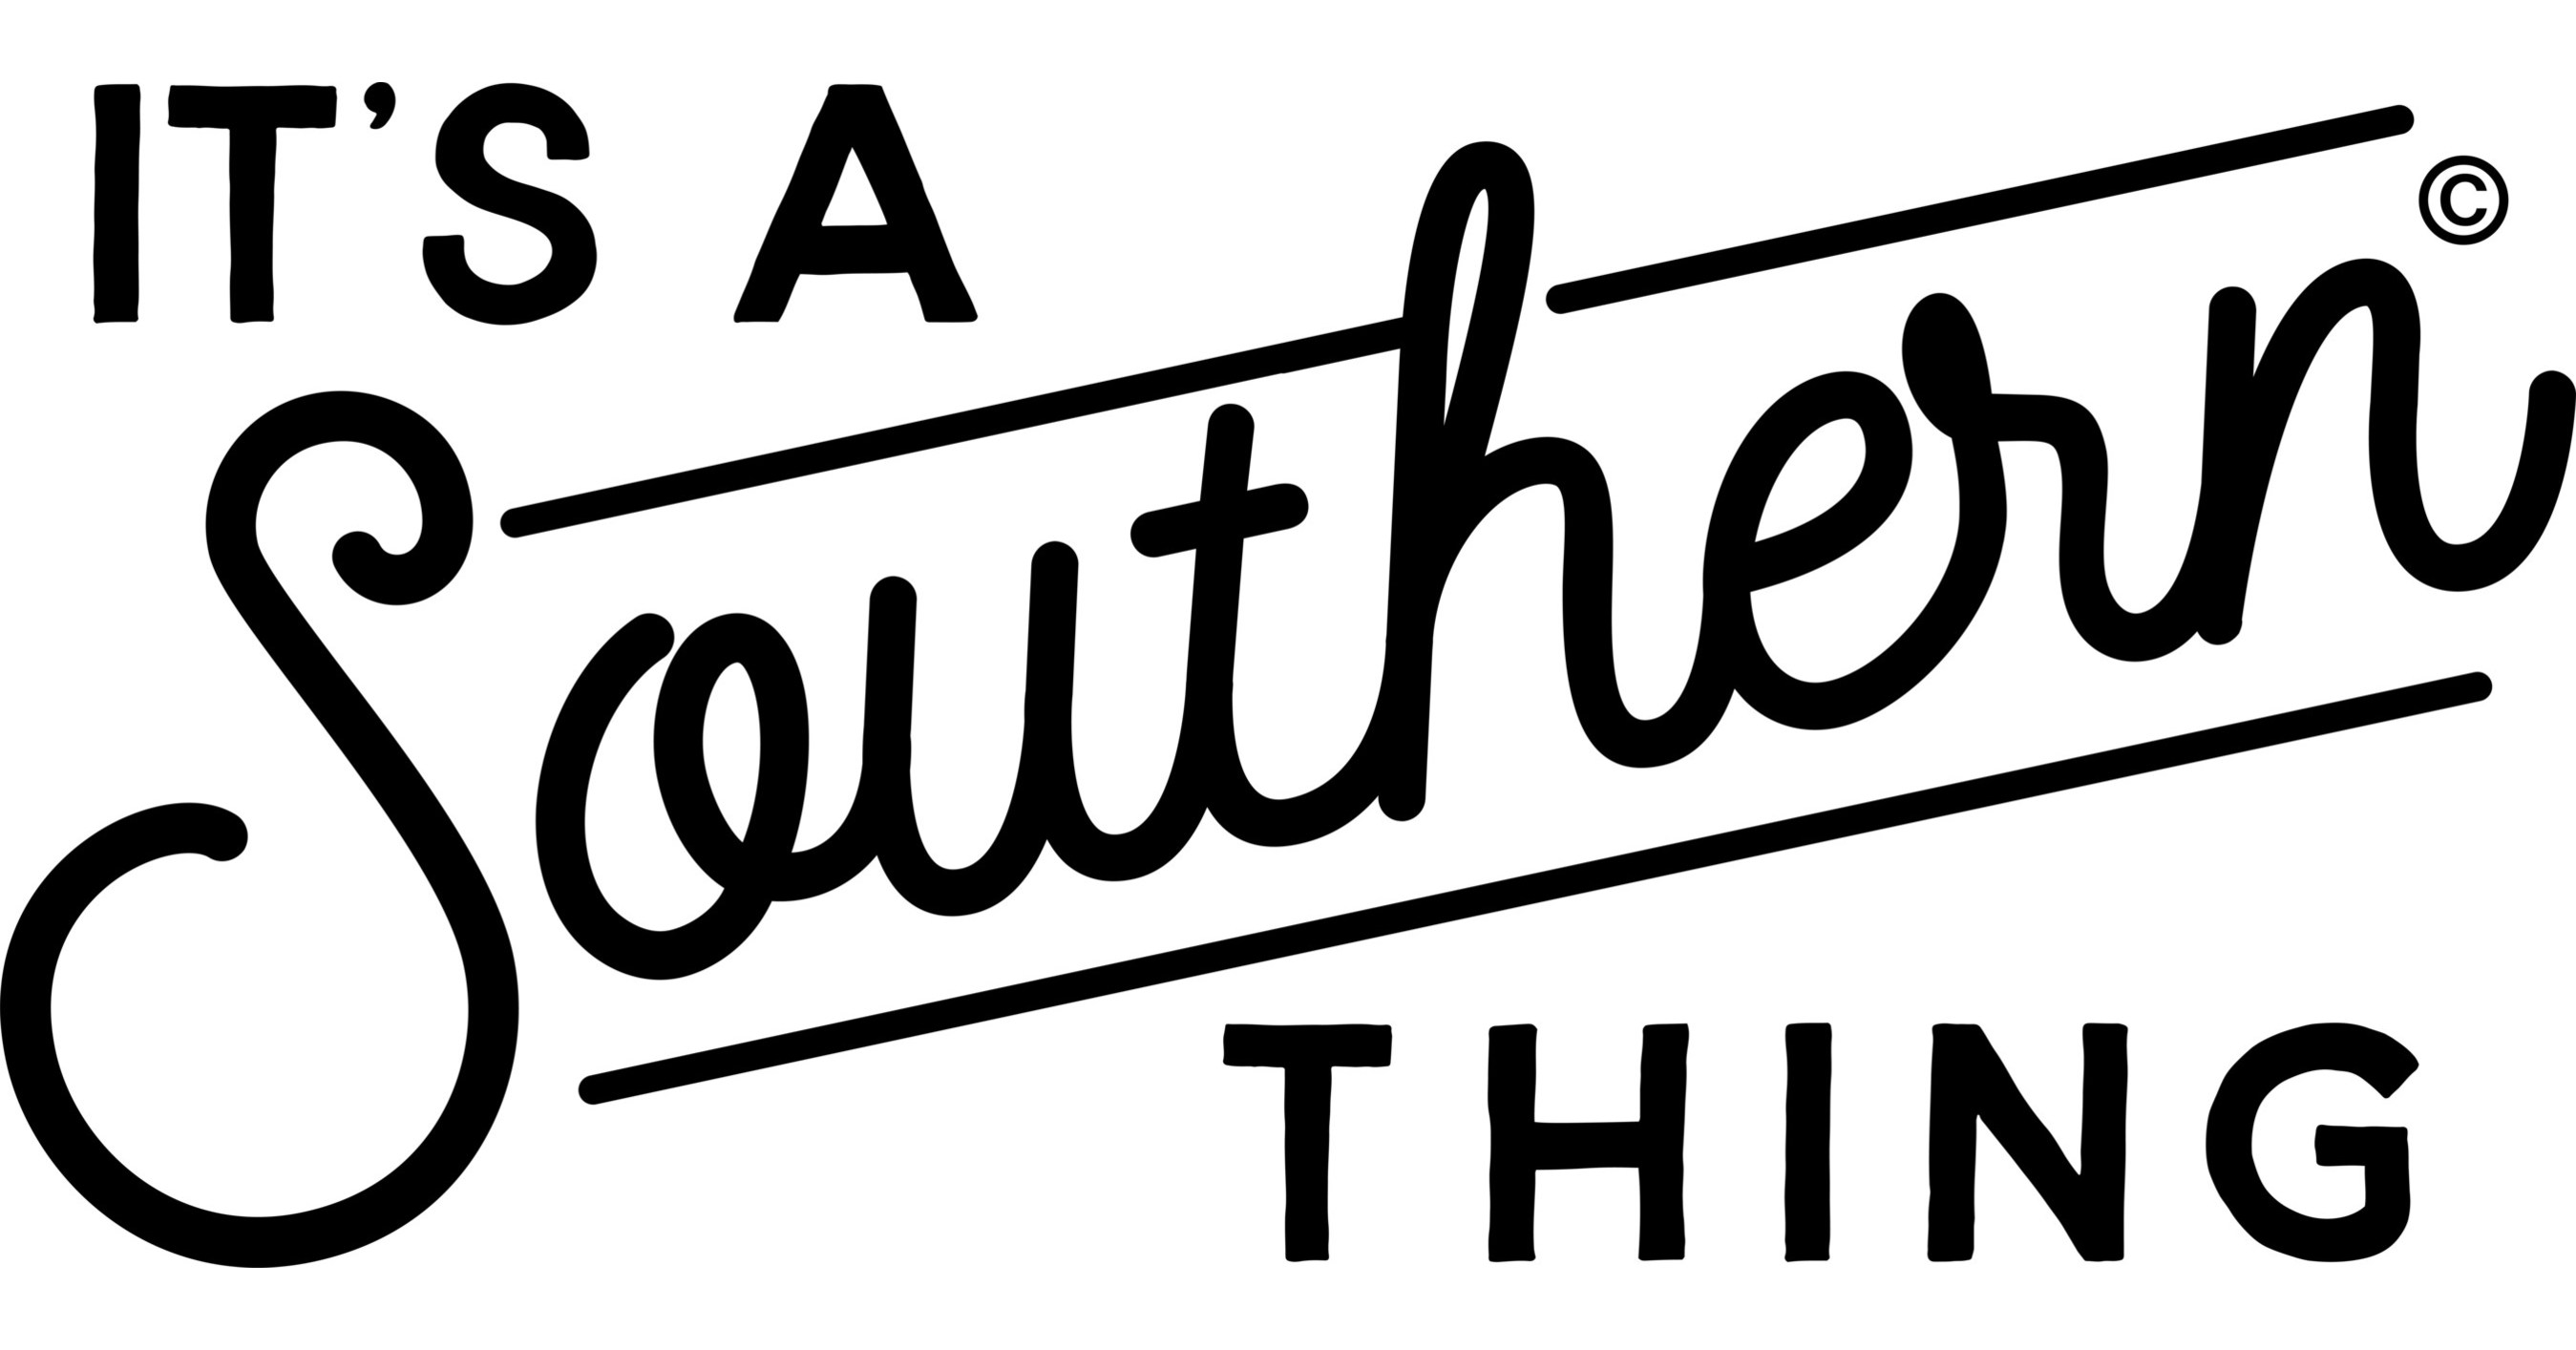 It S A Southern Thing Hosts Charity Auction To Benefit World Central Kitchen July 7 14 Последние твиты от talia mint (@taliamint_off). it s a southern thing hosts charity auction to benefit world central kitchen july 7 14